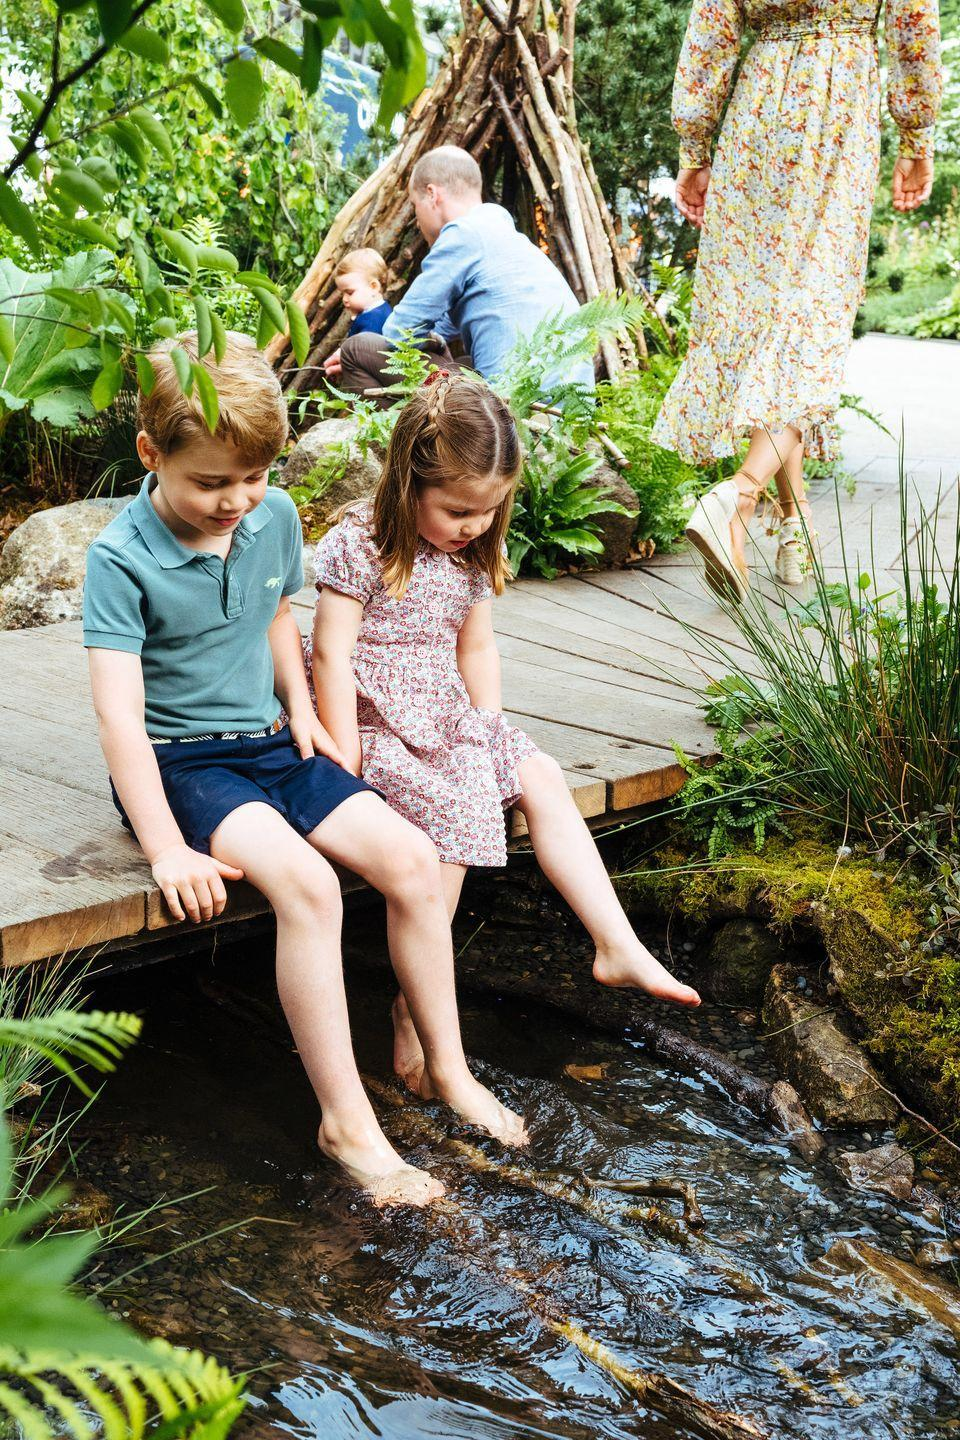 <p>Prince George and Princess Charlotte dip their feet in a stream running through the garden. </p>